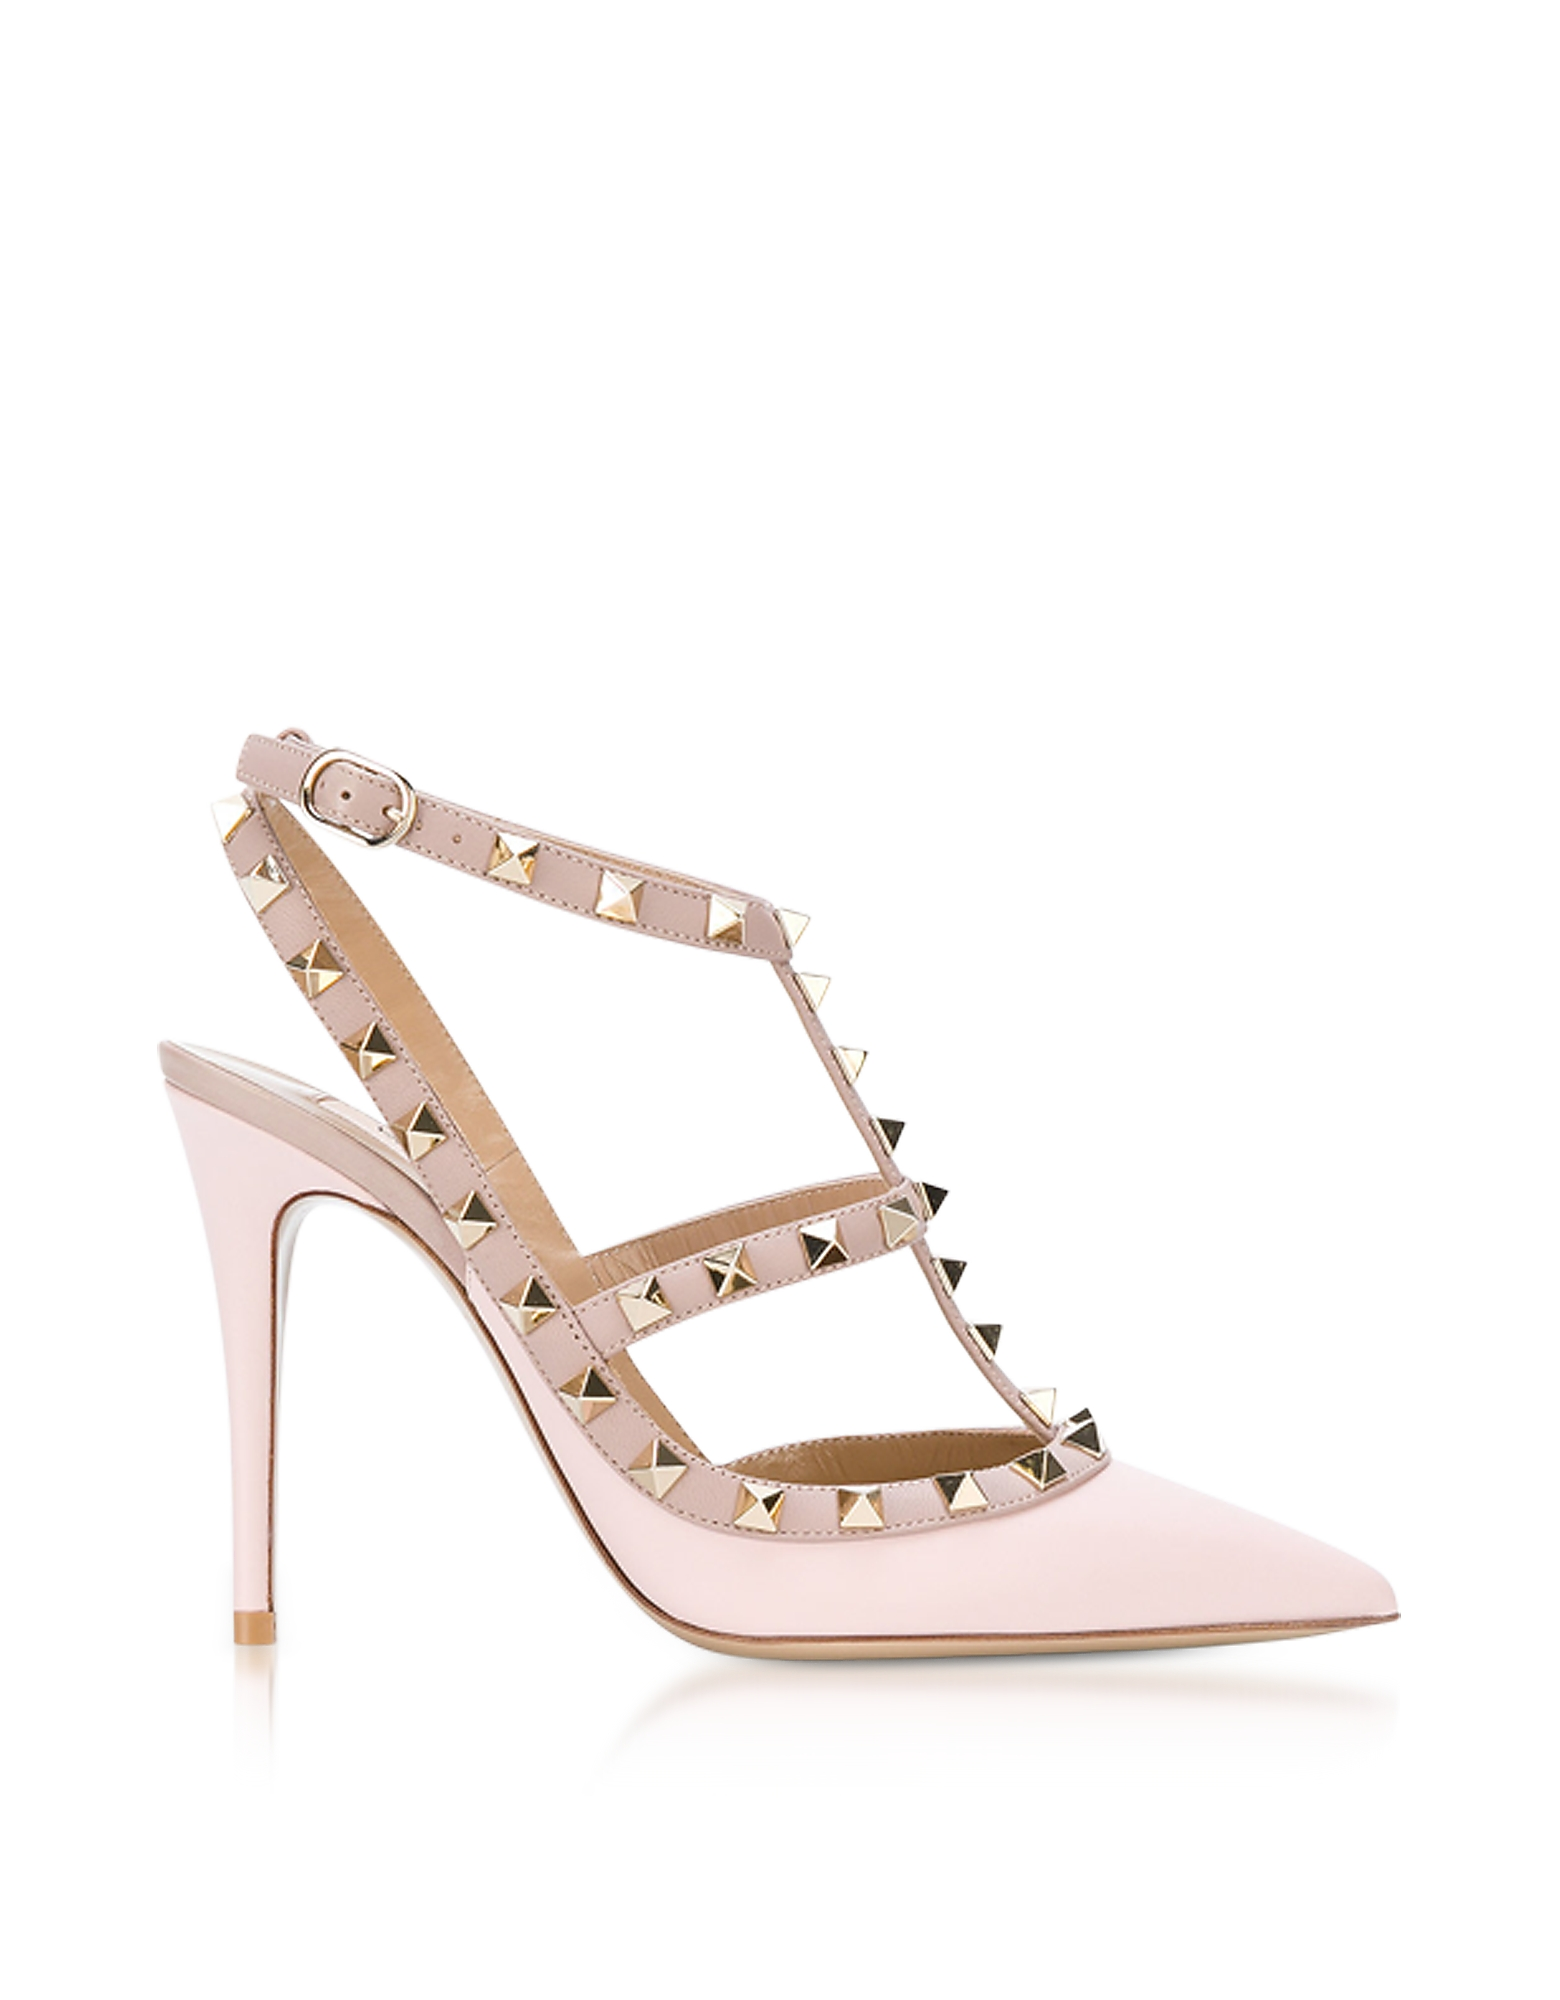 Valentino Shoes, Pink Rockstud Ankle Strap Pump